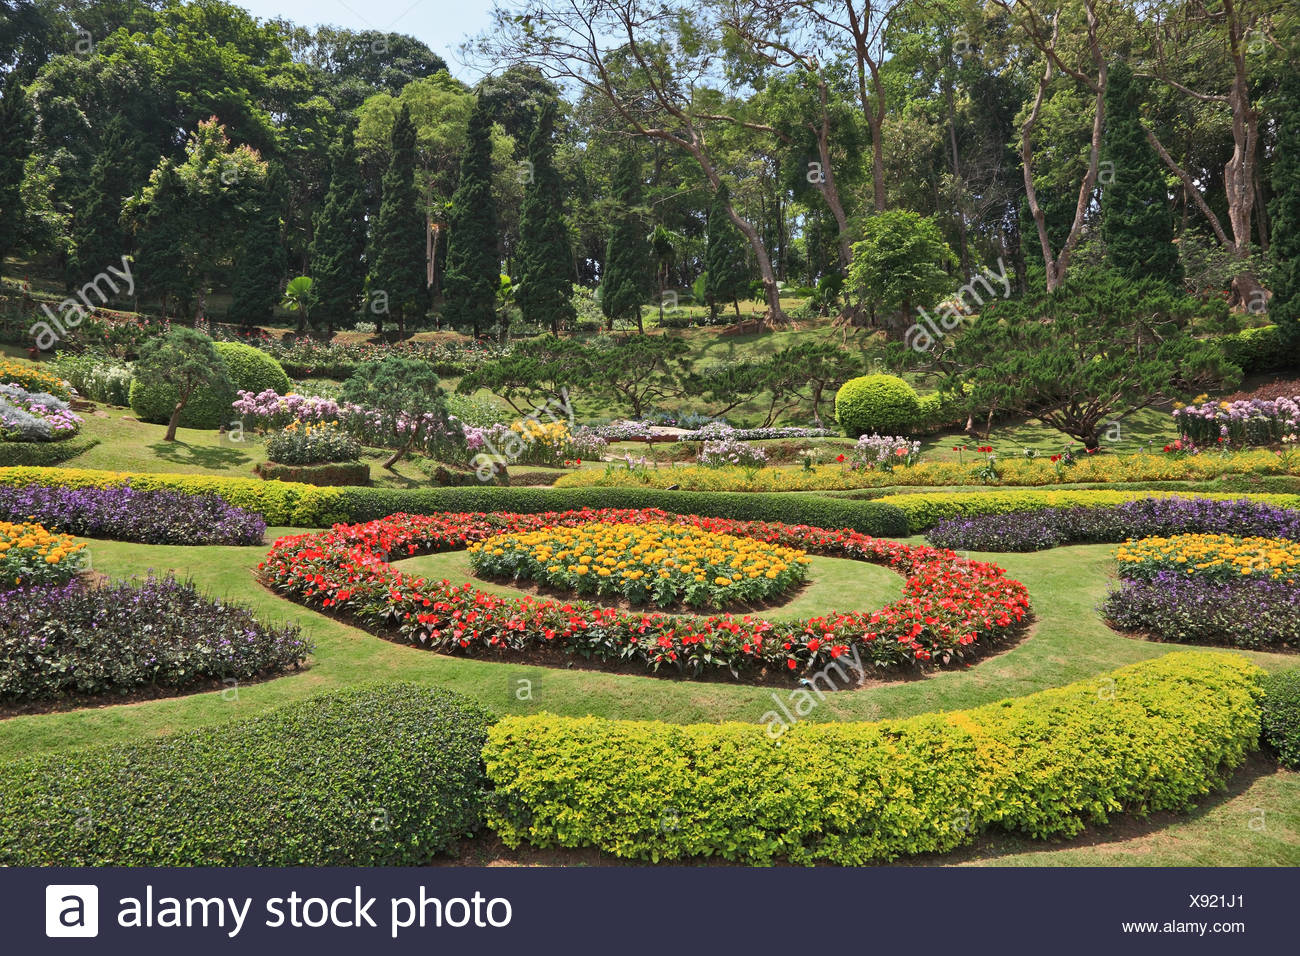 Acacias and artly decorated flower beds - Stock Image